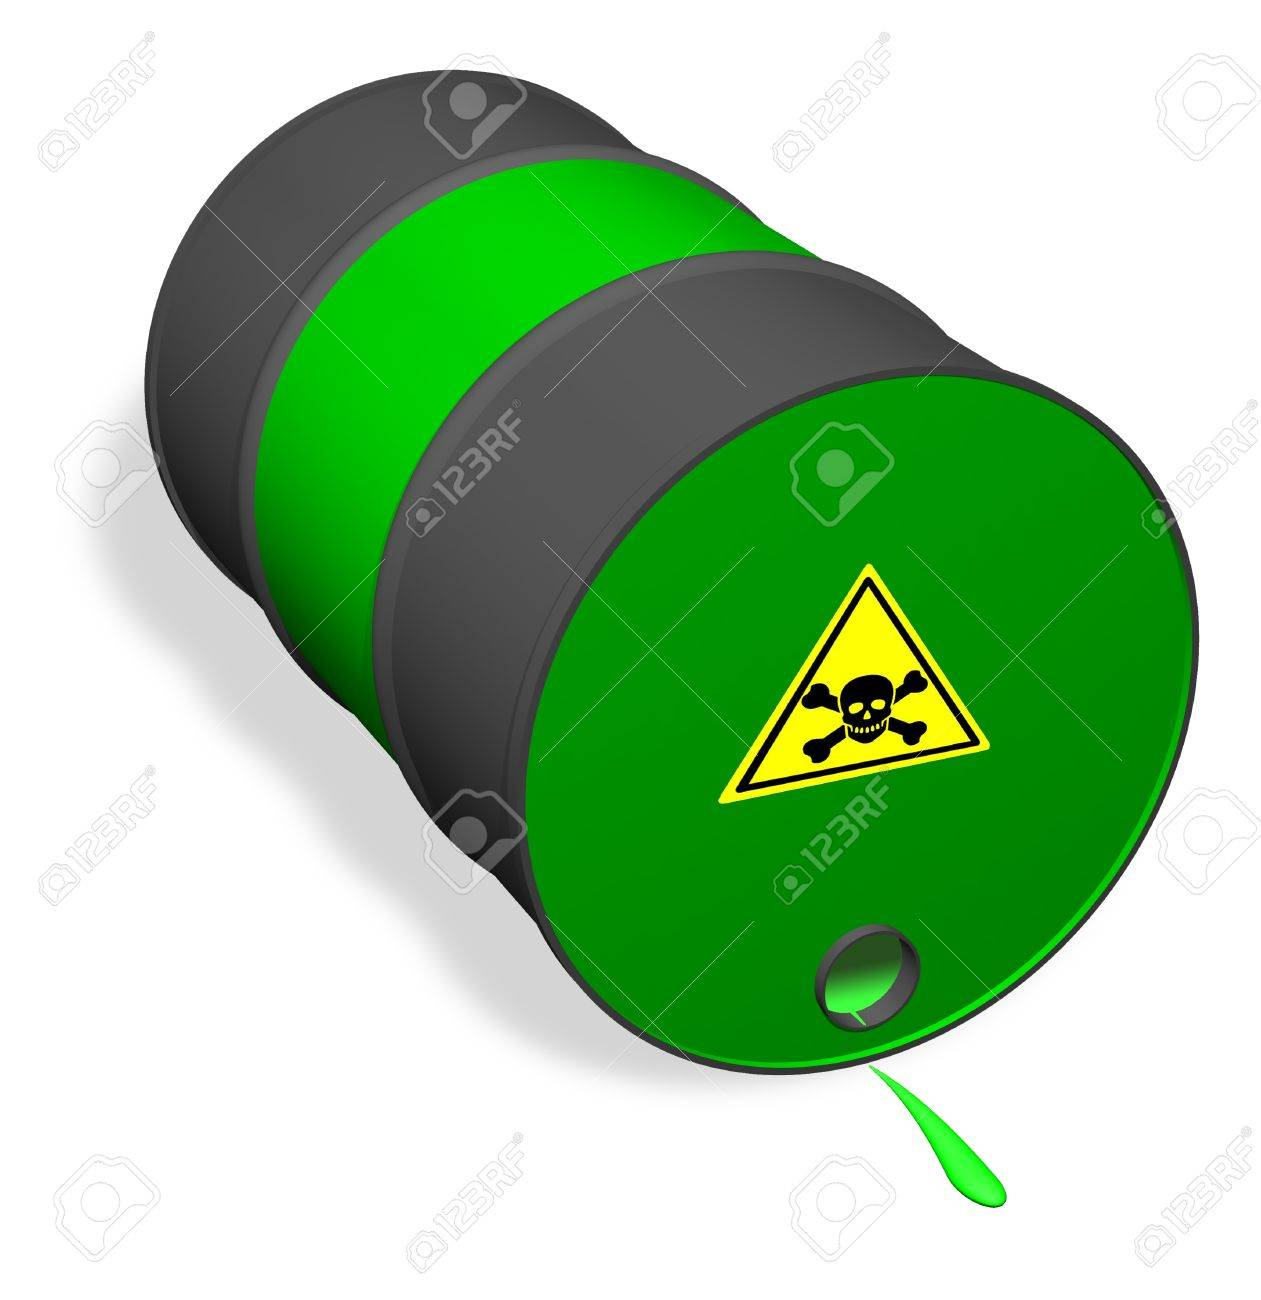 Overturned can of poisonous liquid - 11696975